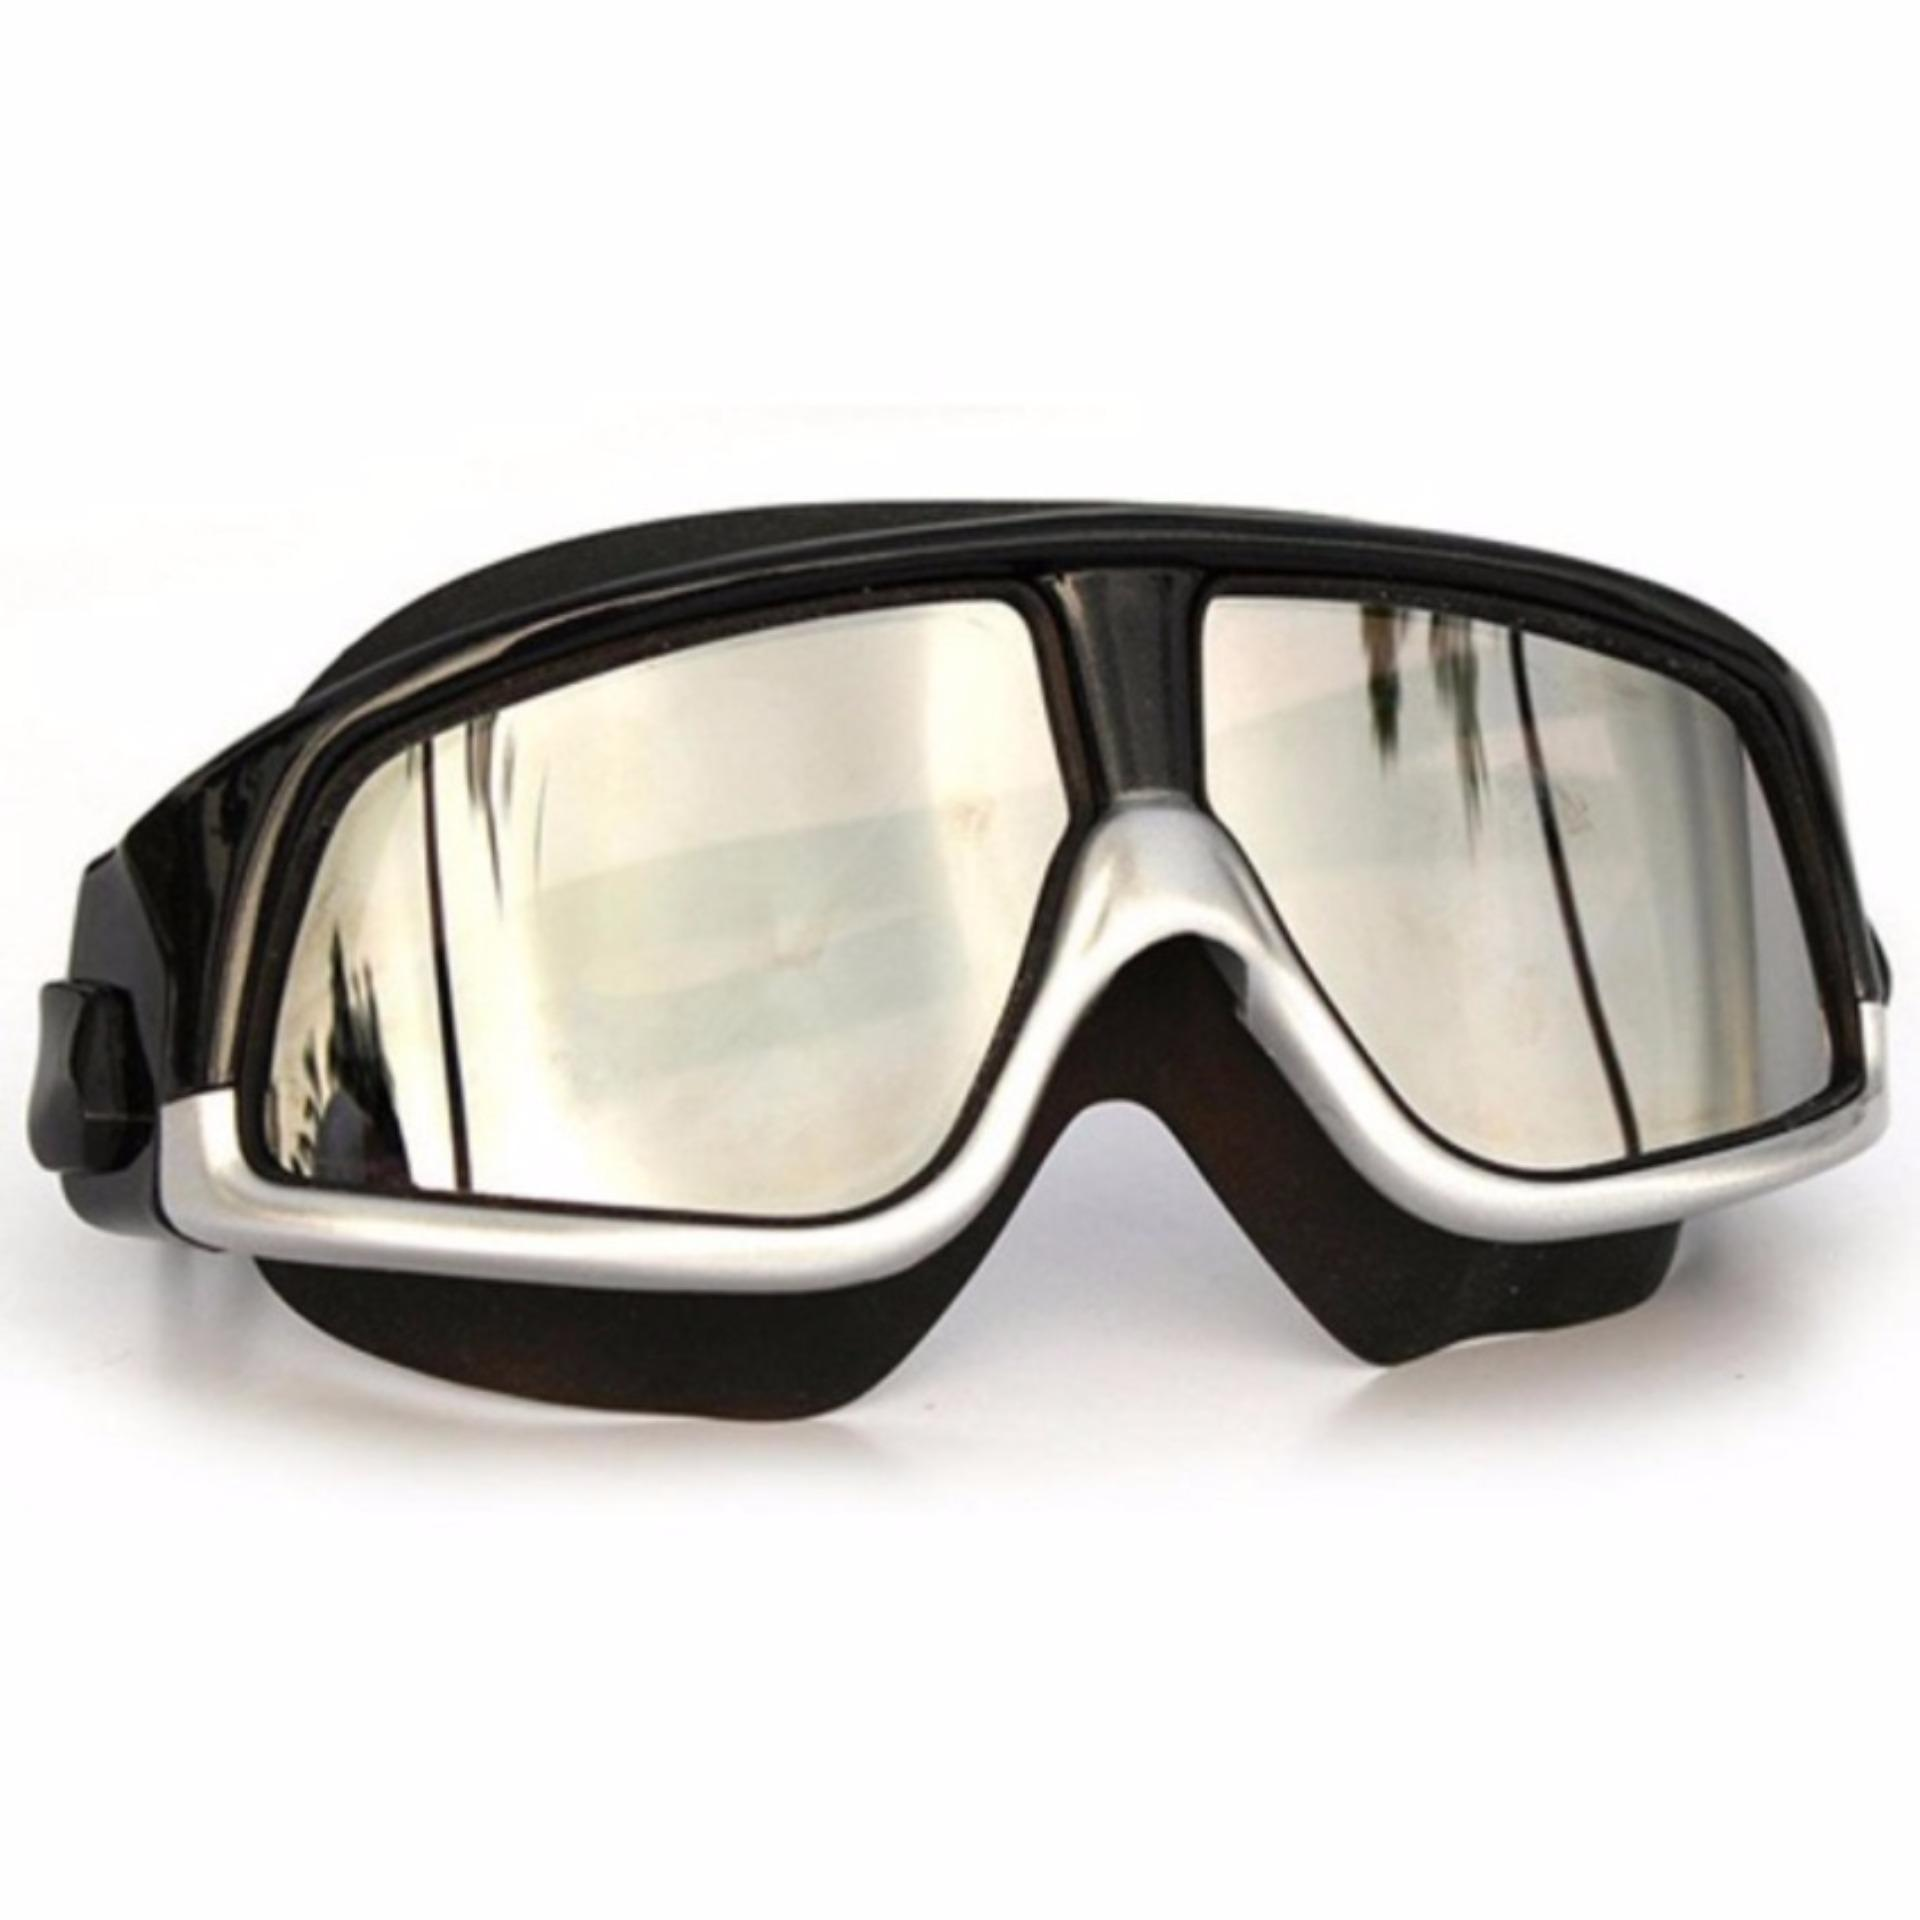 Kacamata Renang Polarizing Anti Fog UV Protection GOG-300 s5125 - Silver .